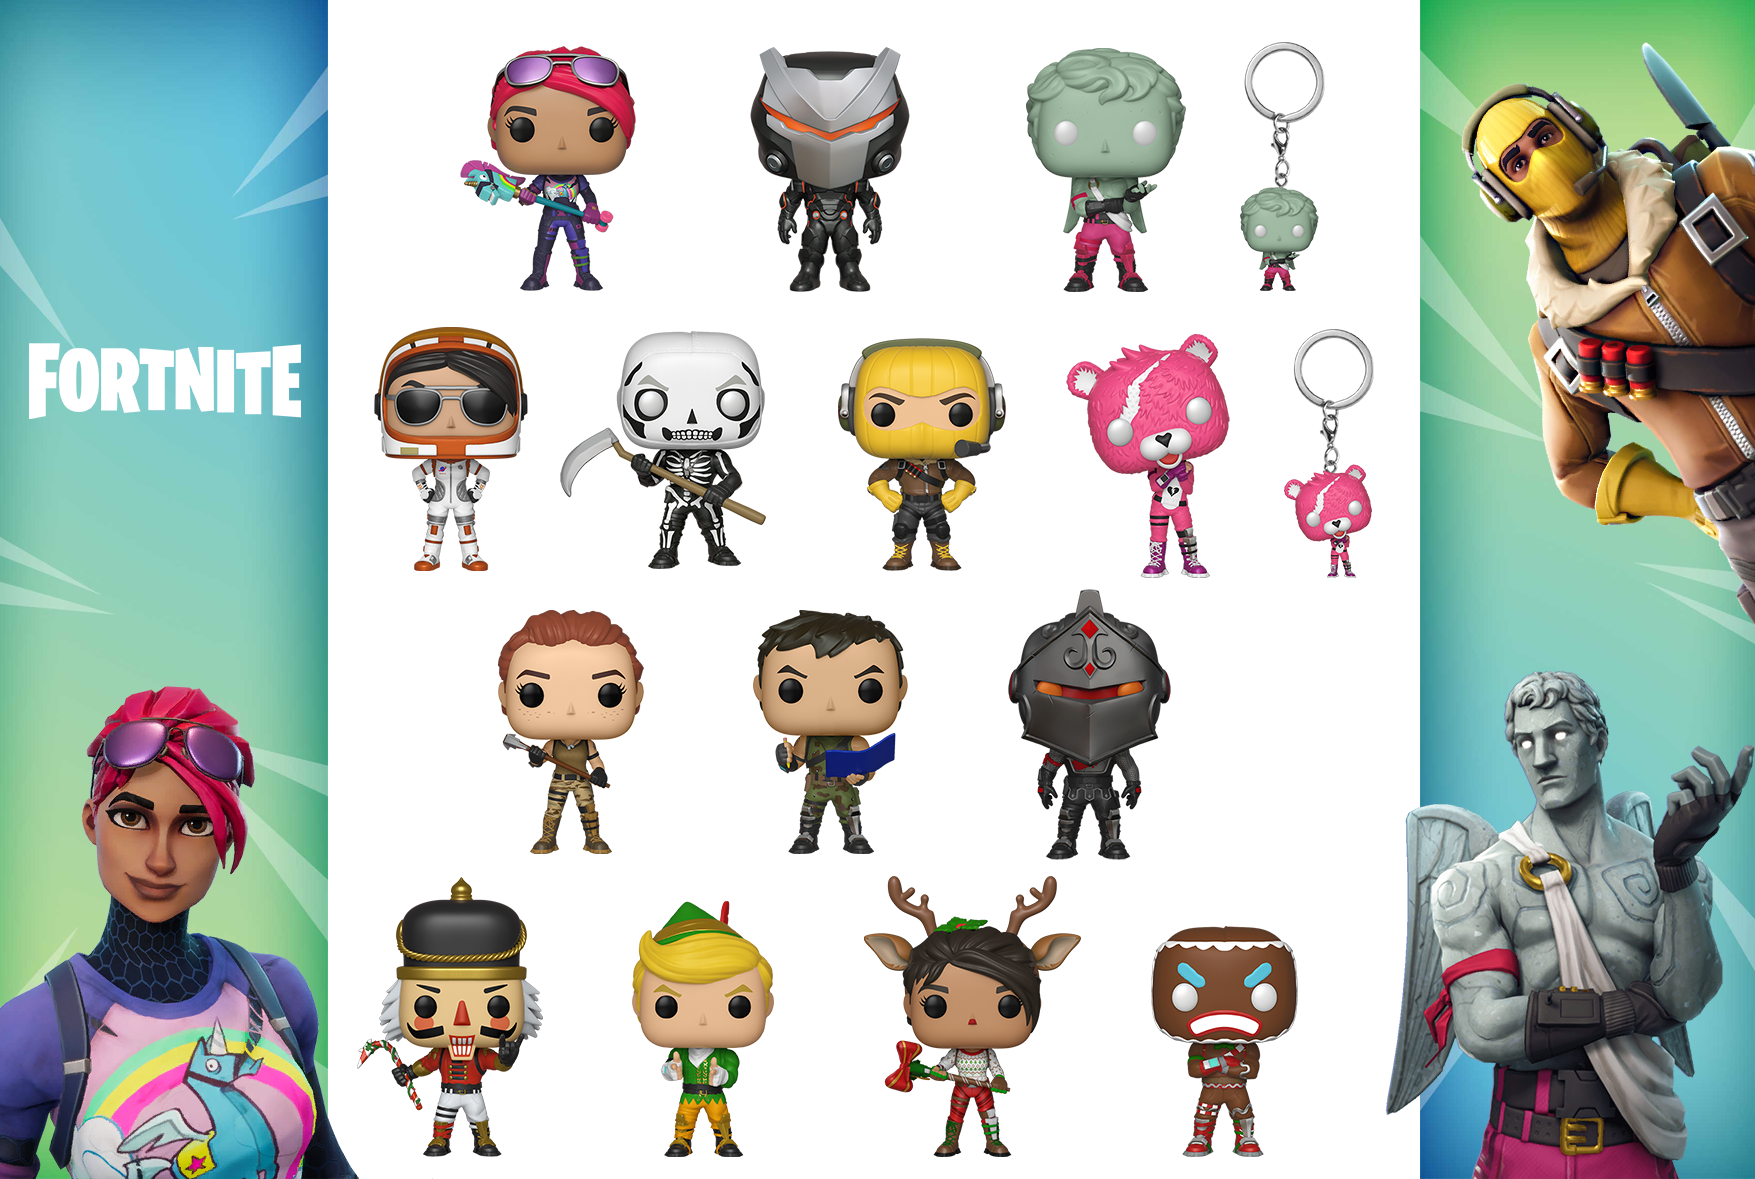 14 Official Fortnite Funko Pop Toys Have Been Revealed